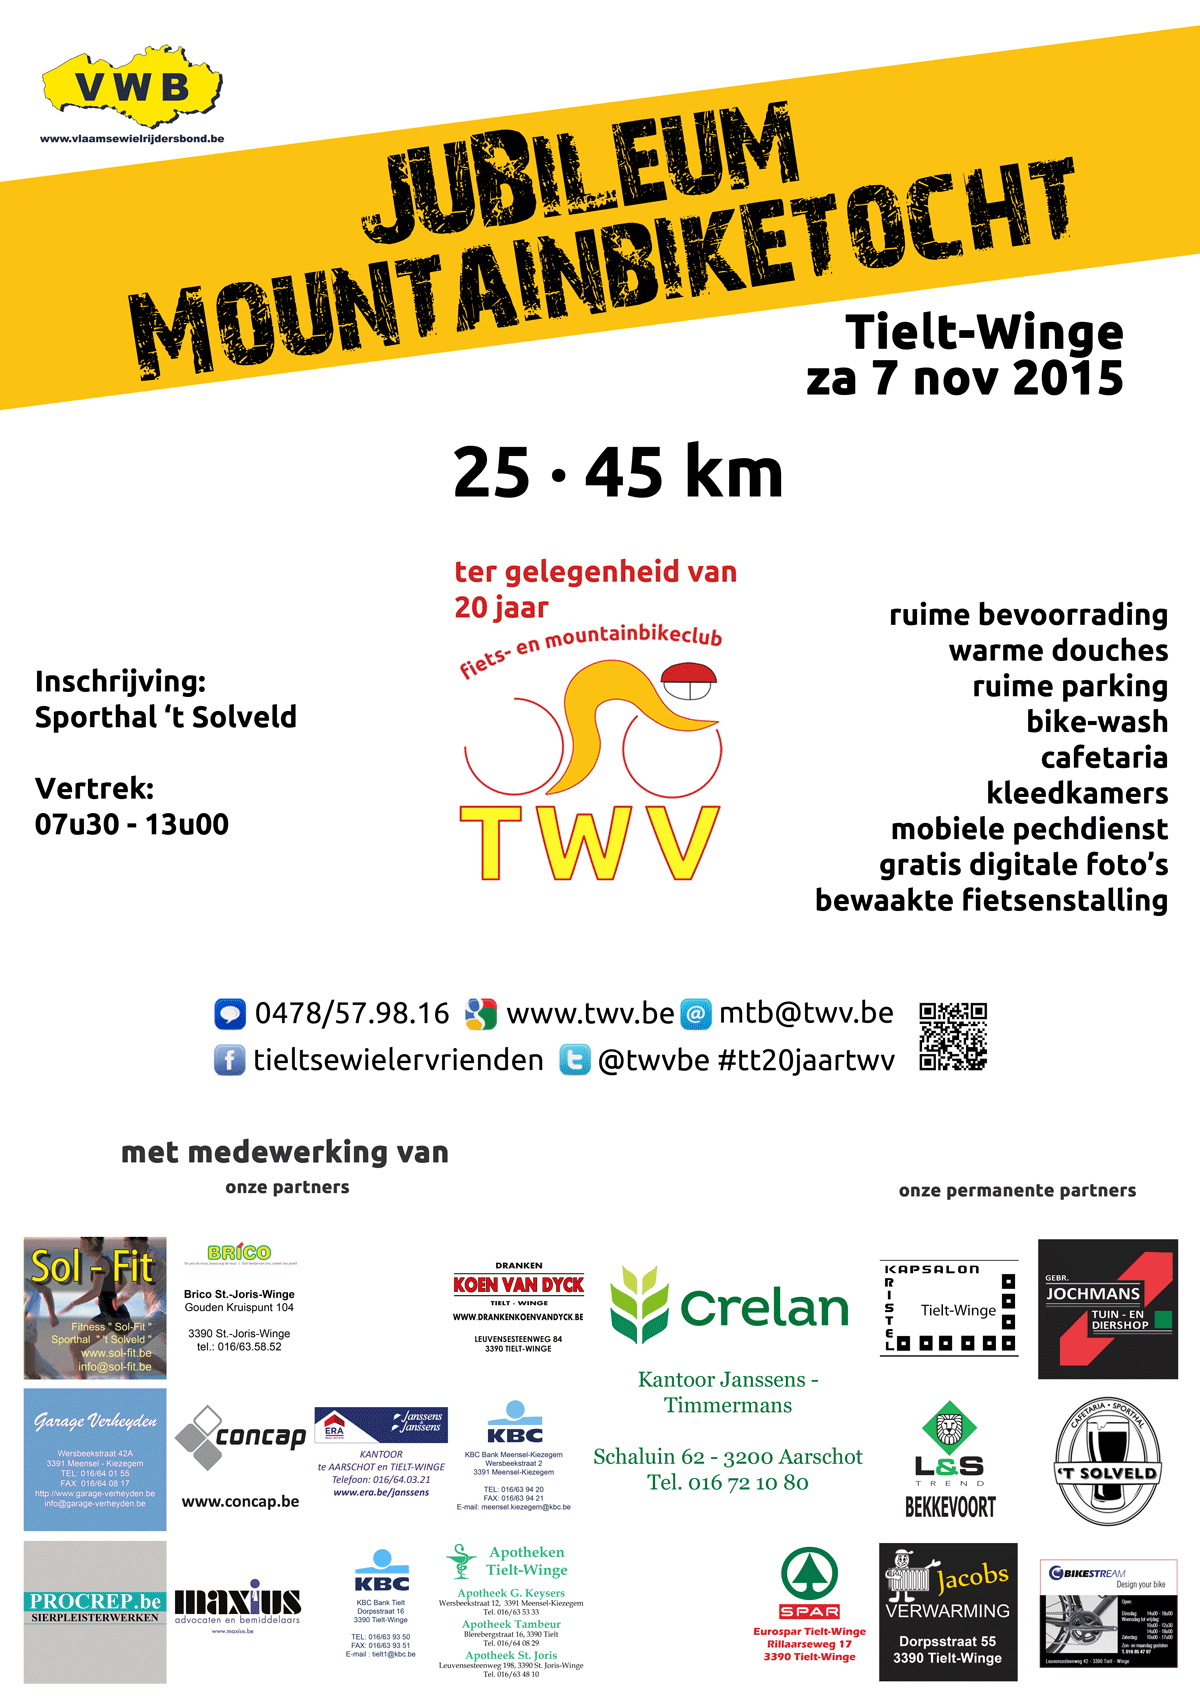 http://www.twv.be/img/events/mtbwinter2015.png